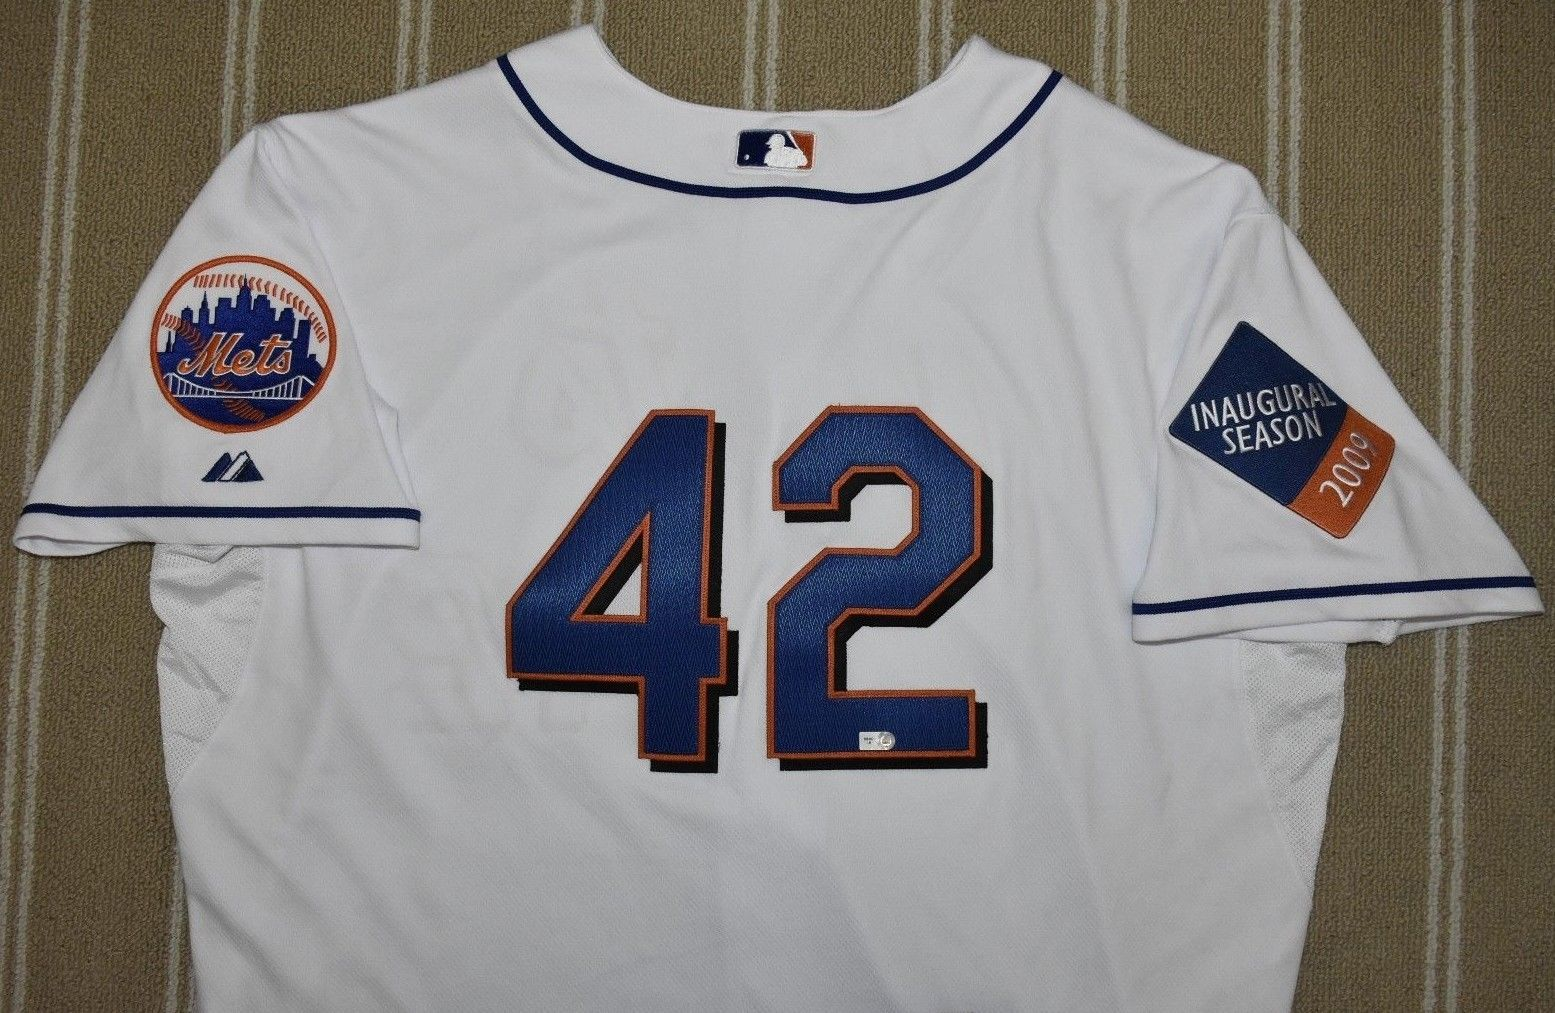 detailed look 58d46 5f76d TheMediagoon.com: Game Used Razor Shines Jackie Robinson Jersey